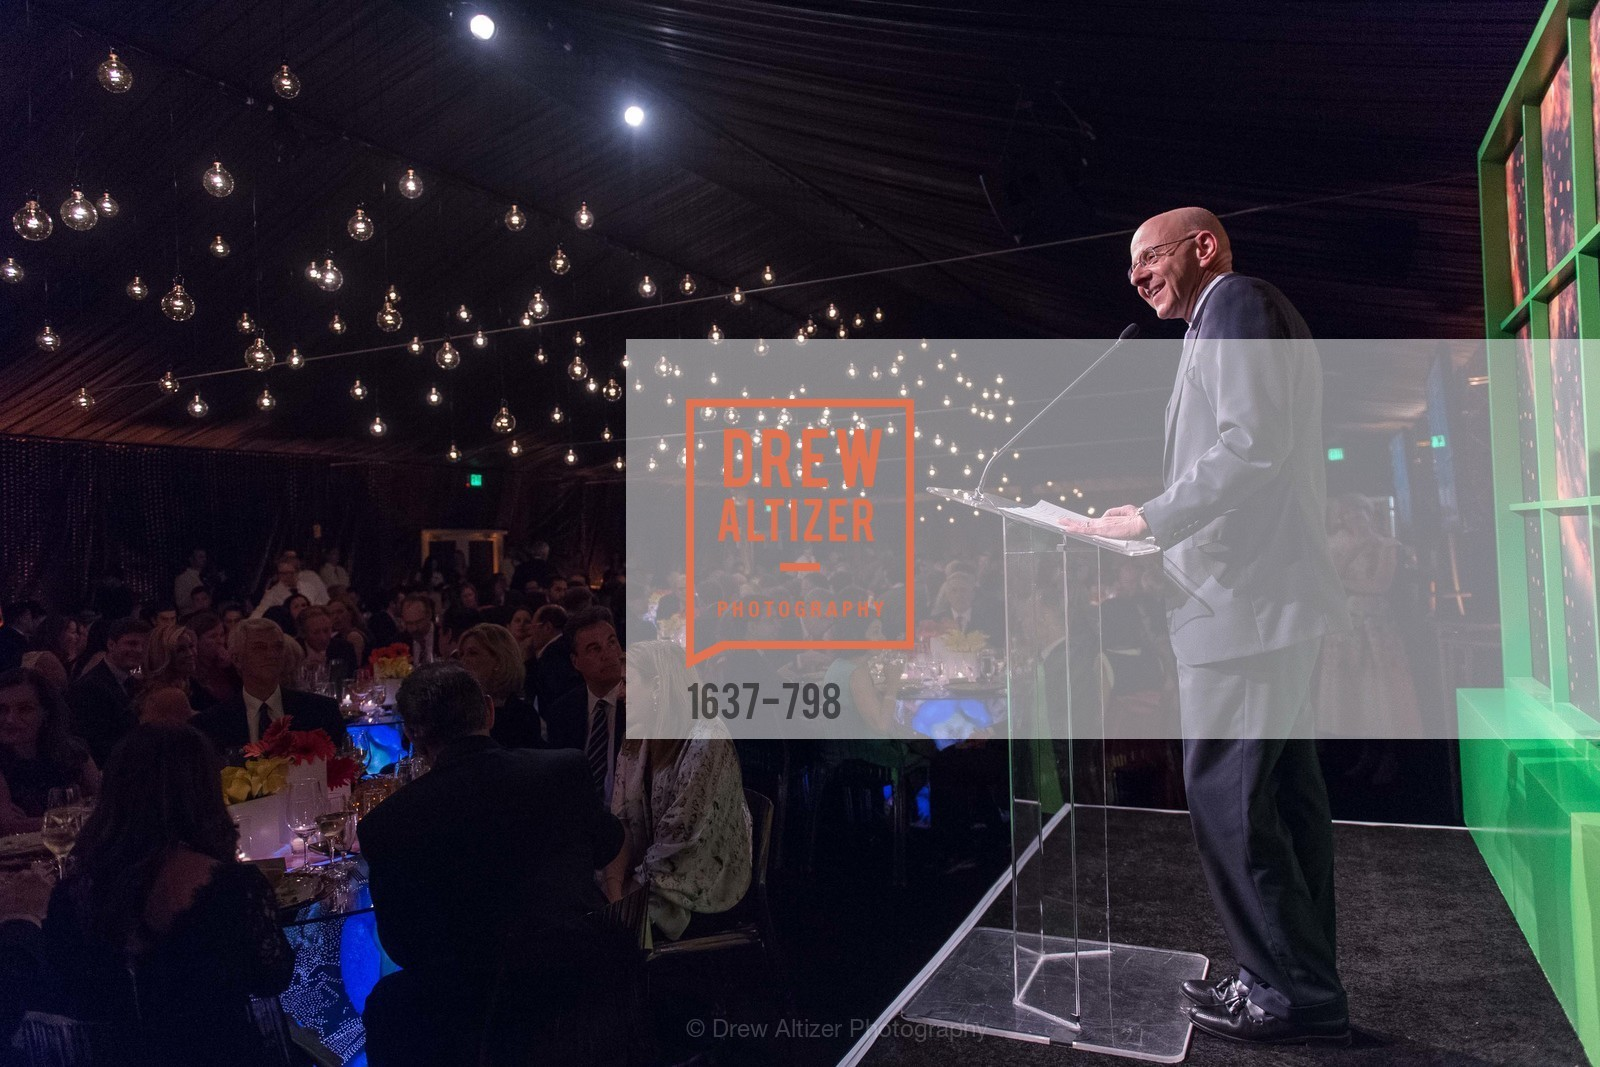 Jerome Vascellaro, CALIFORNIA ACADEMY OF SCIENCES - Big Bang Gala 2015, US, April 23rd, 2015,Drew Altizer, Drew Altizer Photography, full-service agency, private events, San Francisco photographer, photographer california